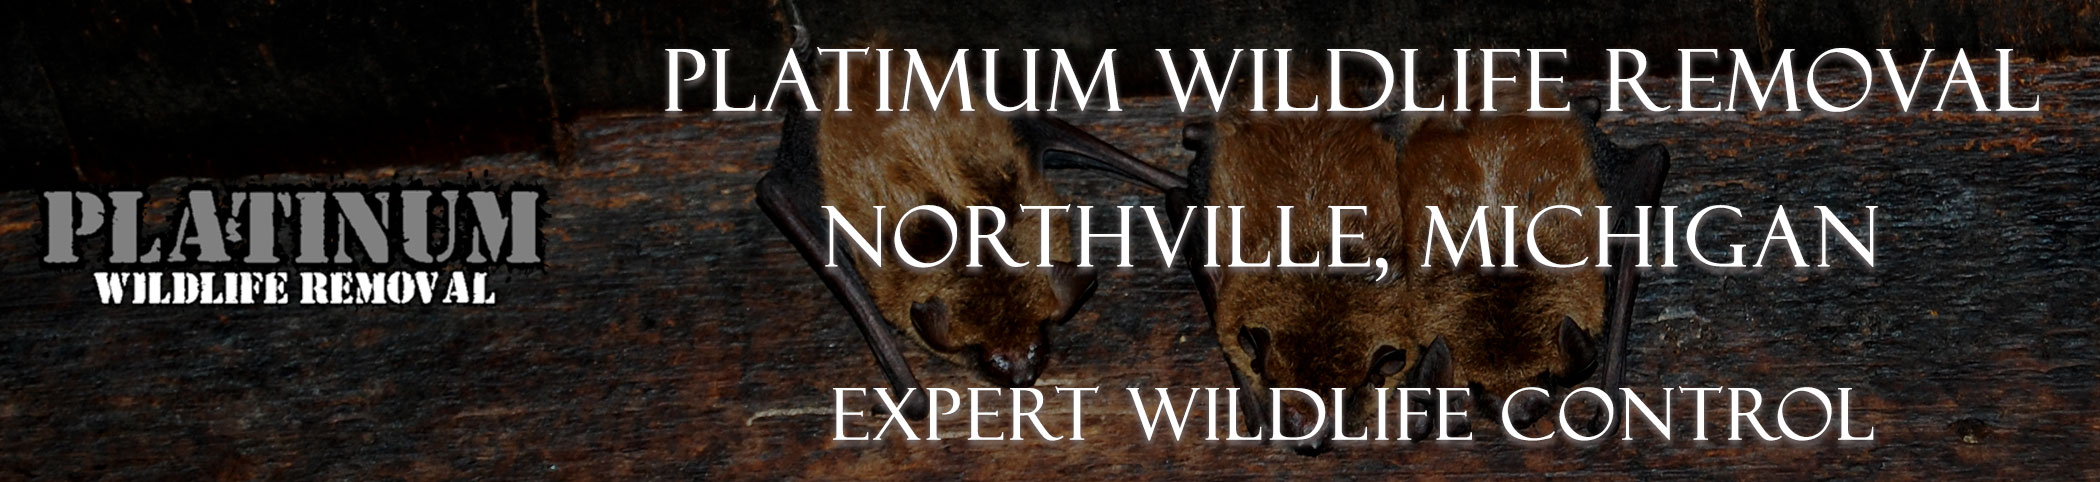 Northville-Platinum-Wildlife-Removal-michgan